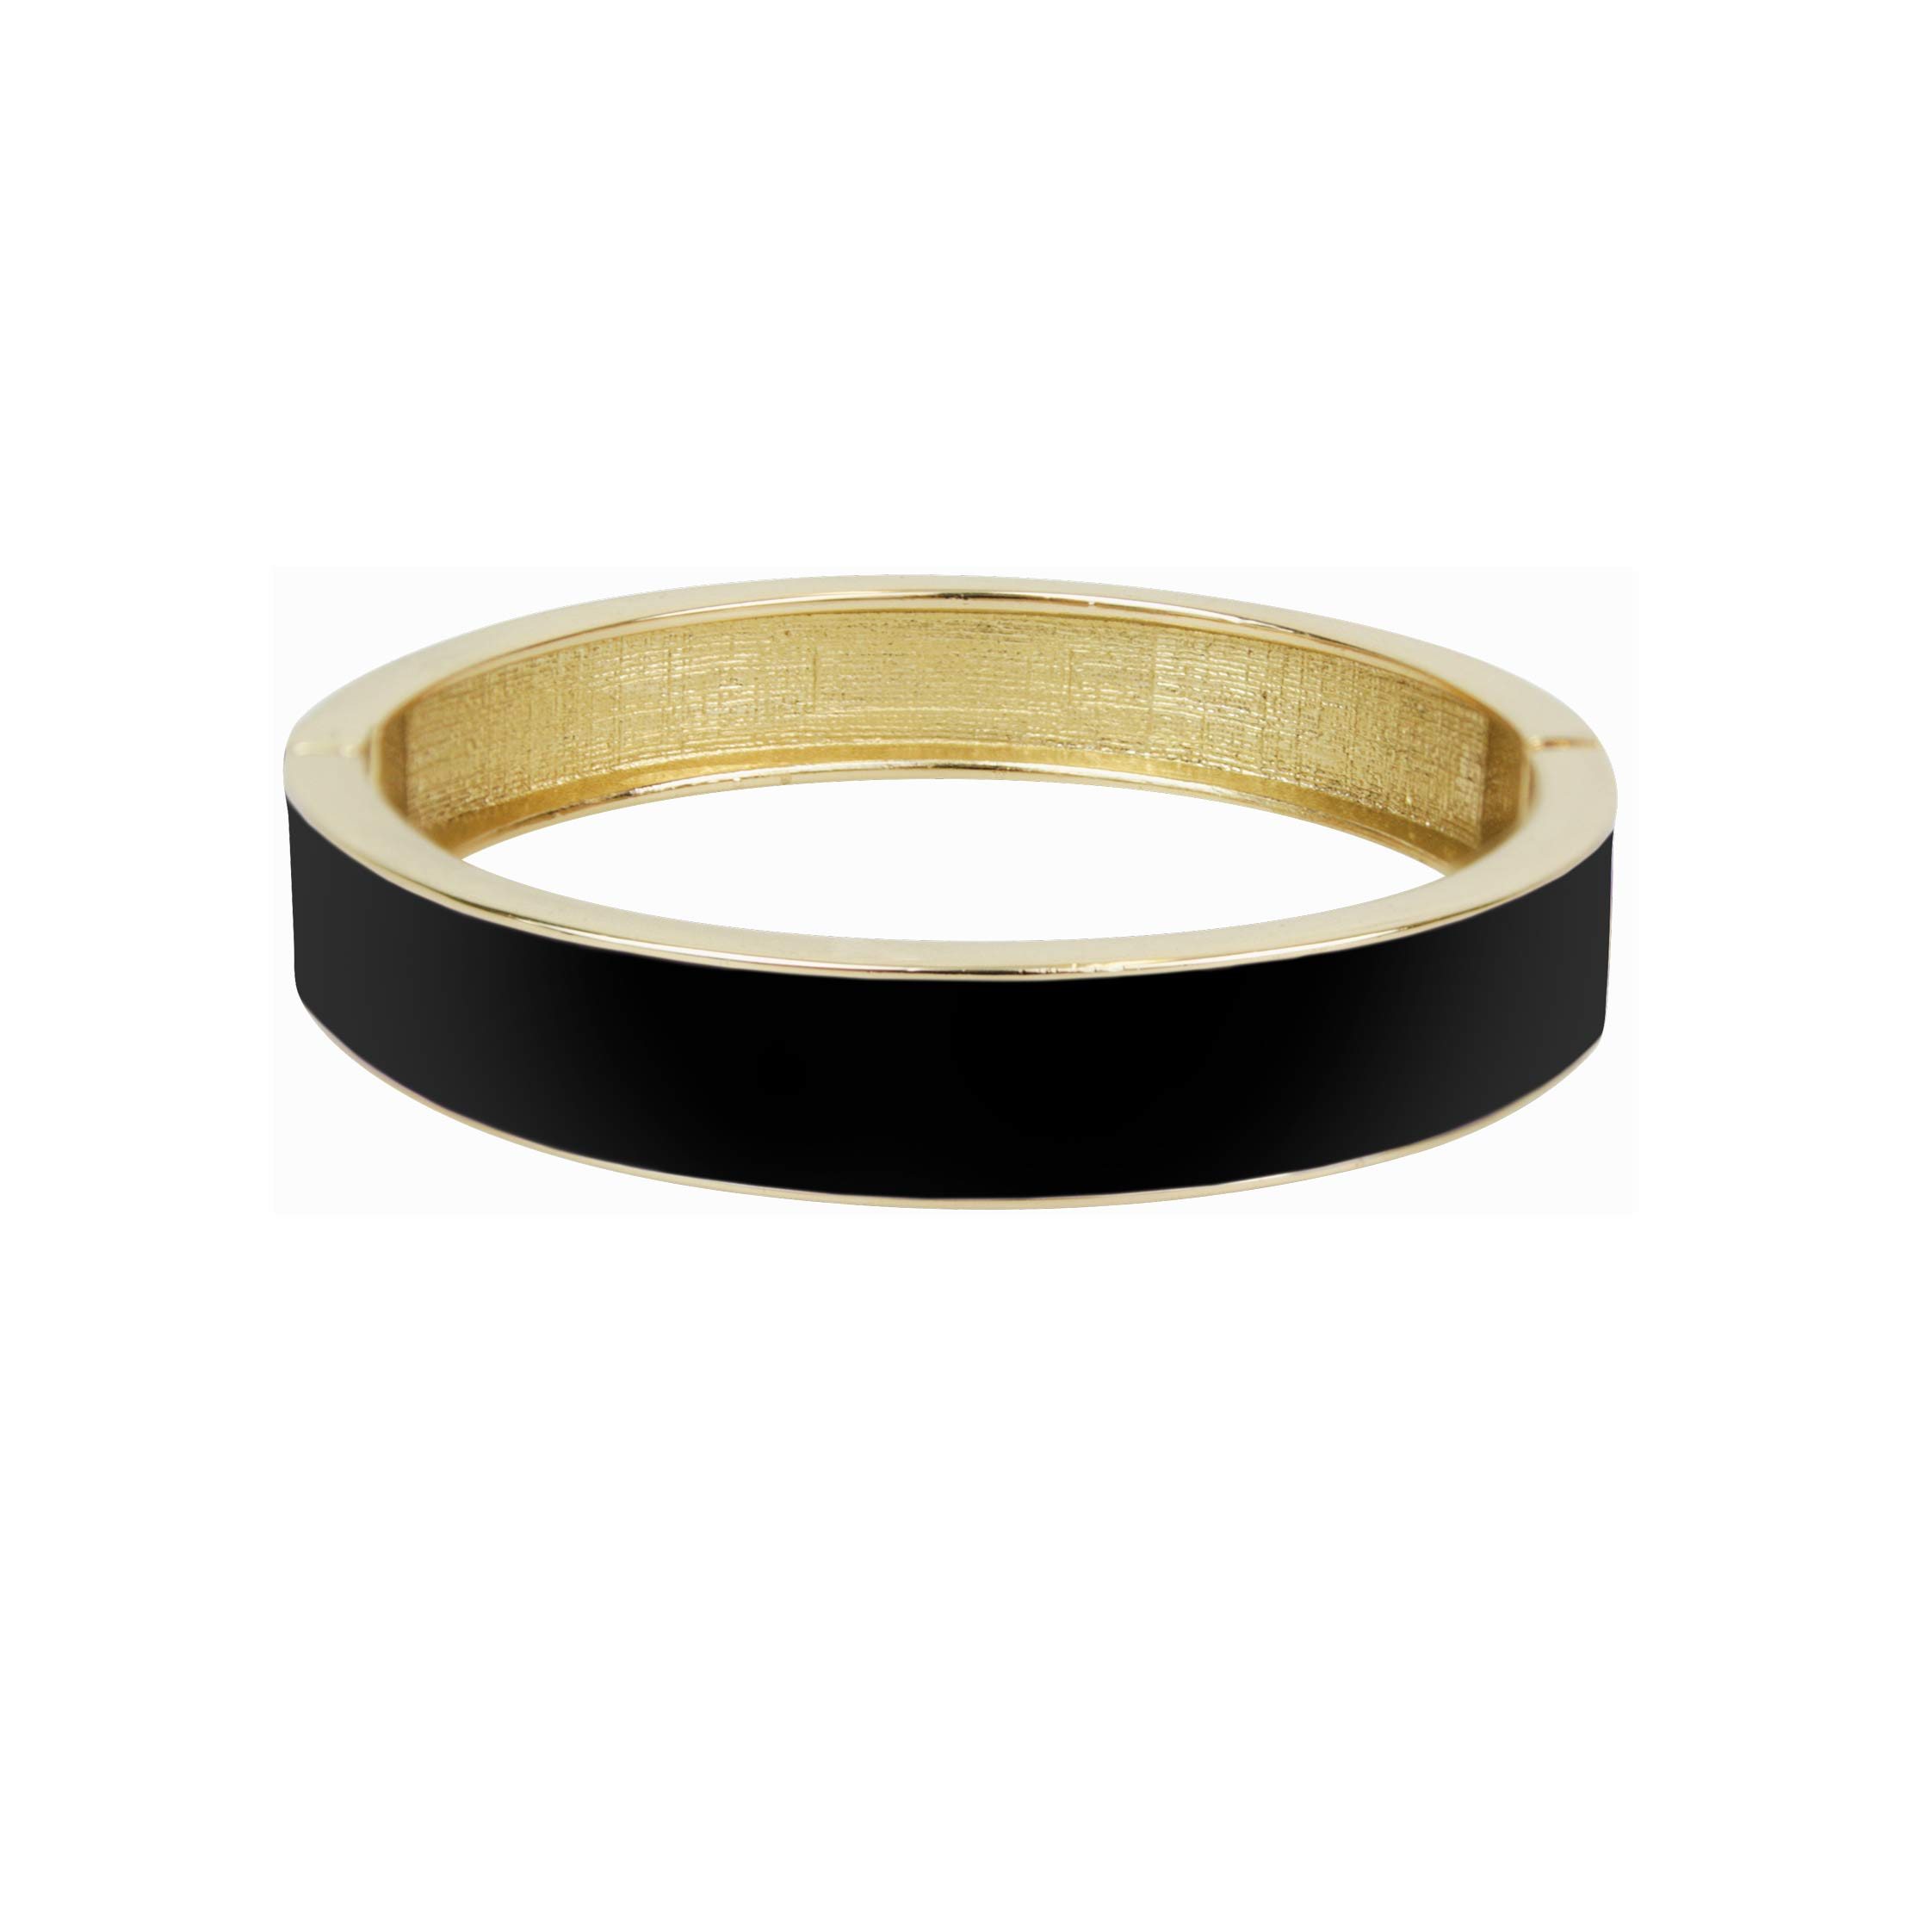 Enamel cuff black/gold